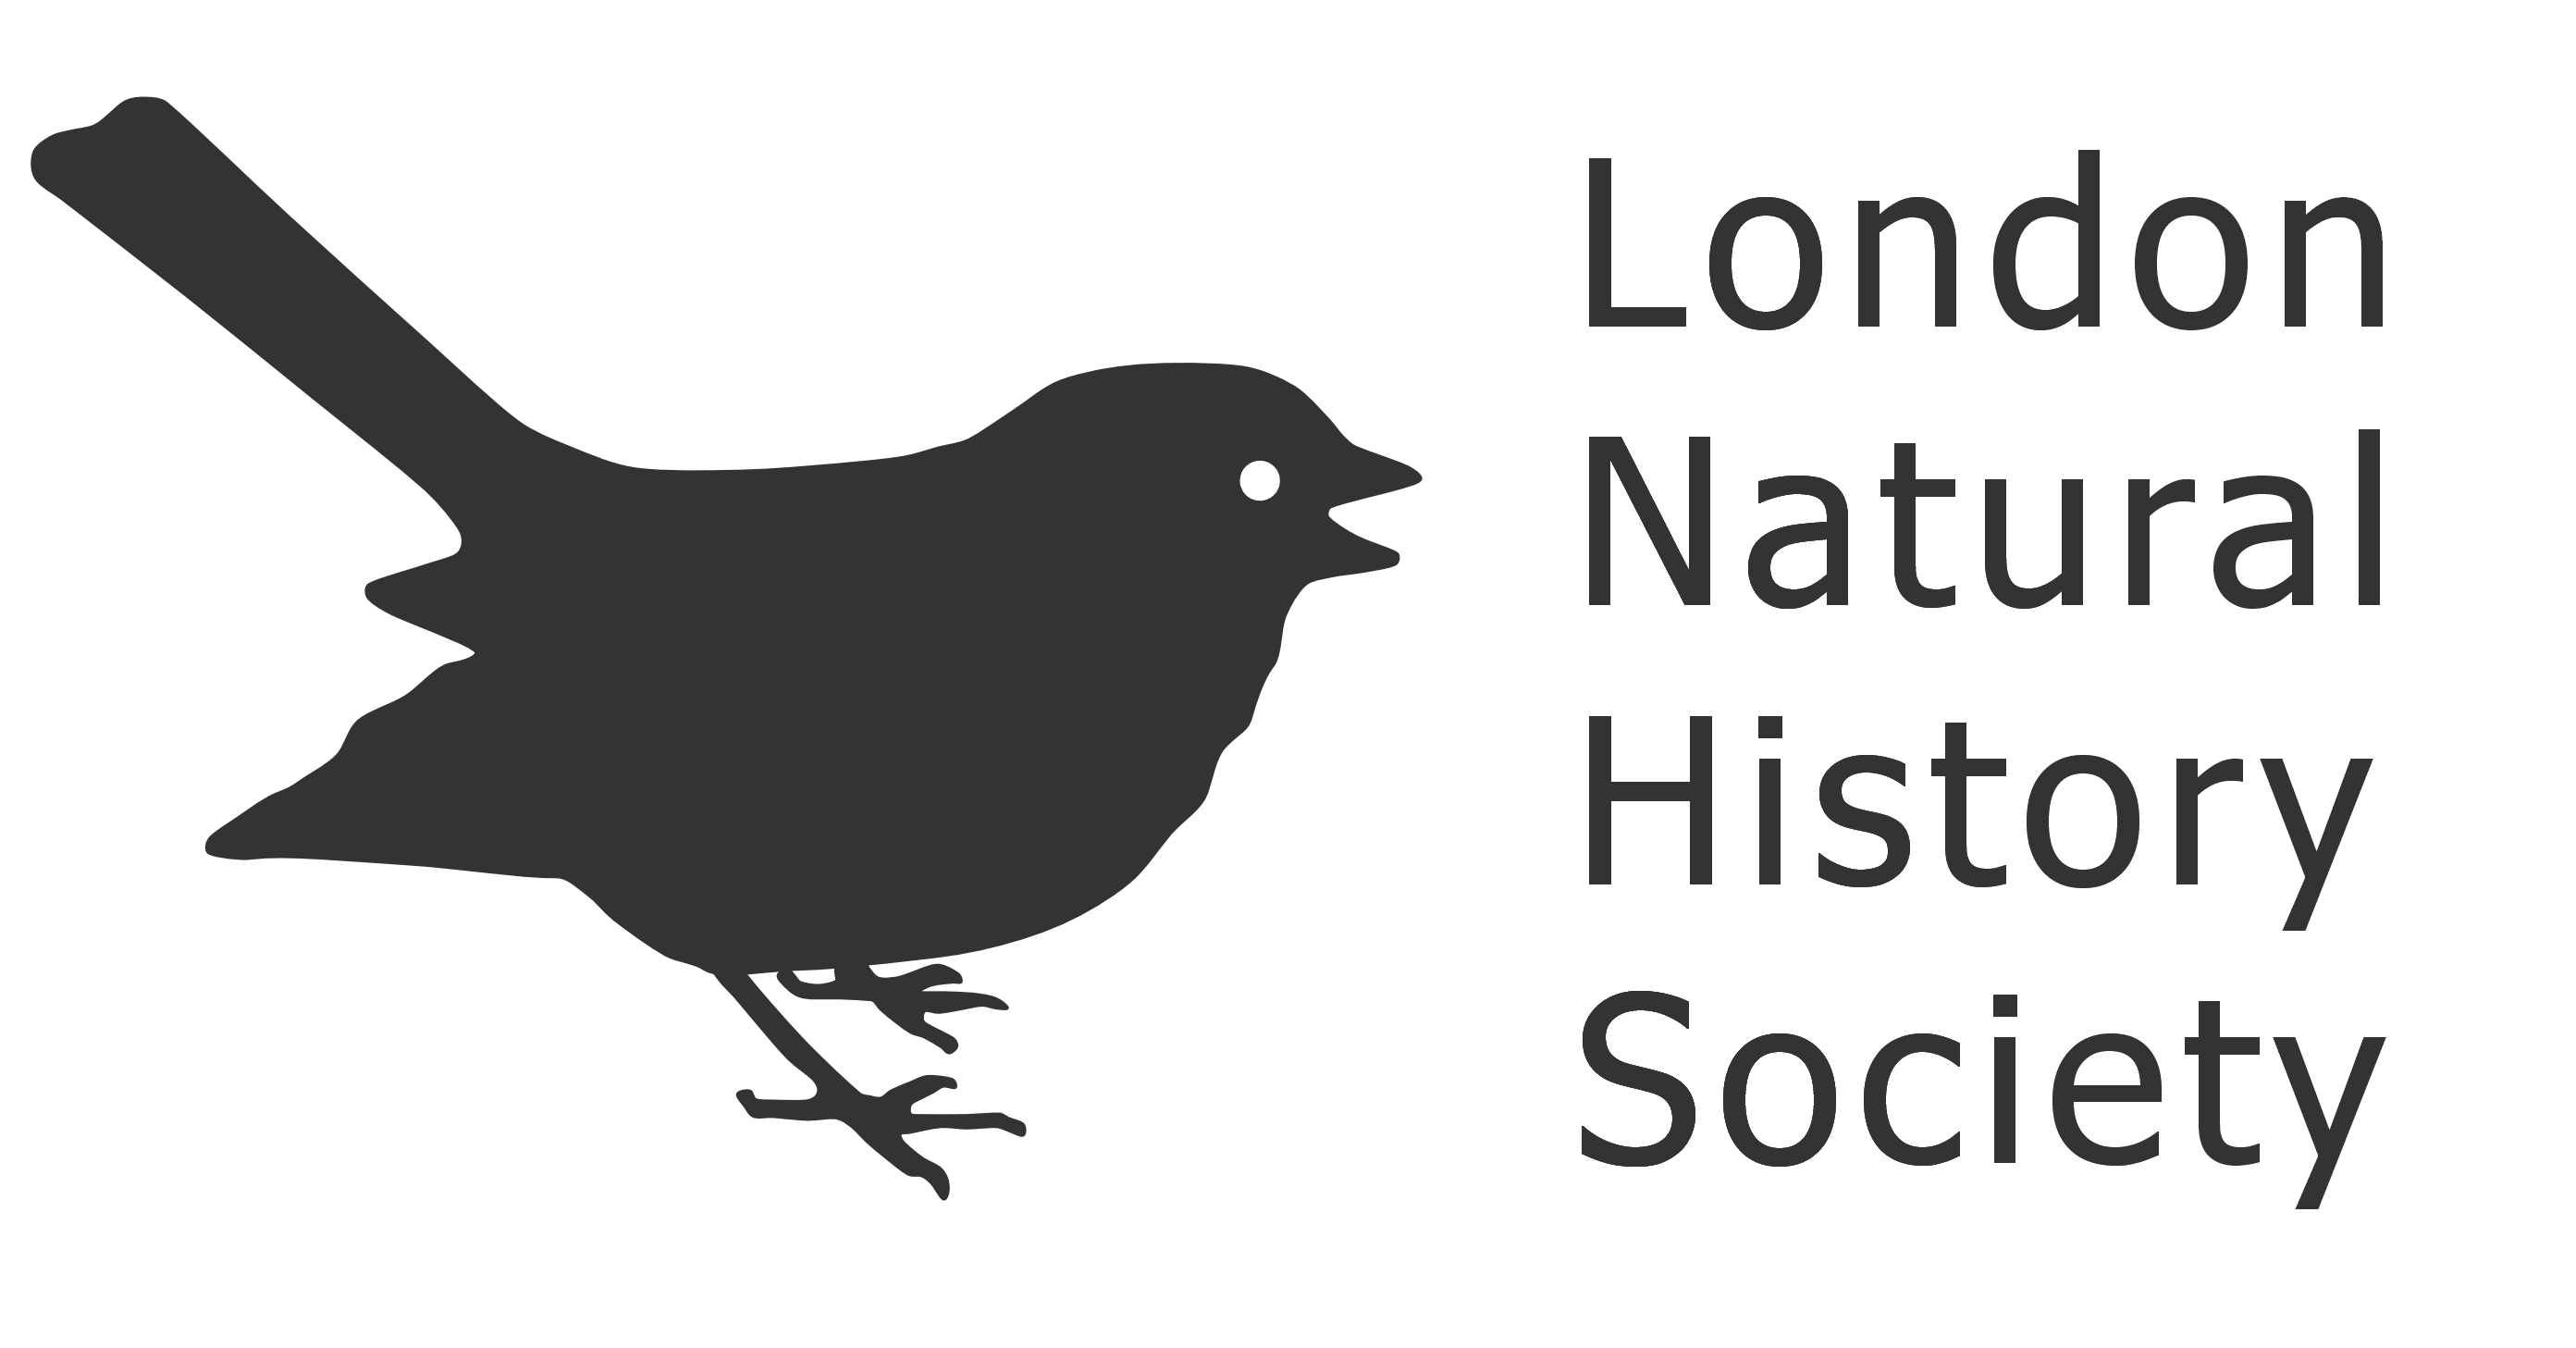 London Natural History Society